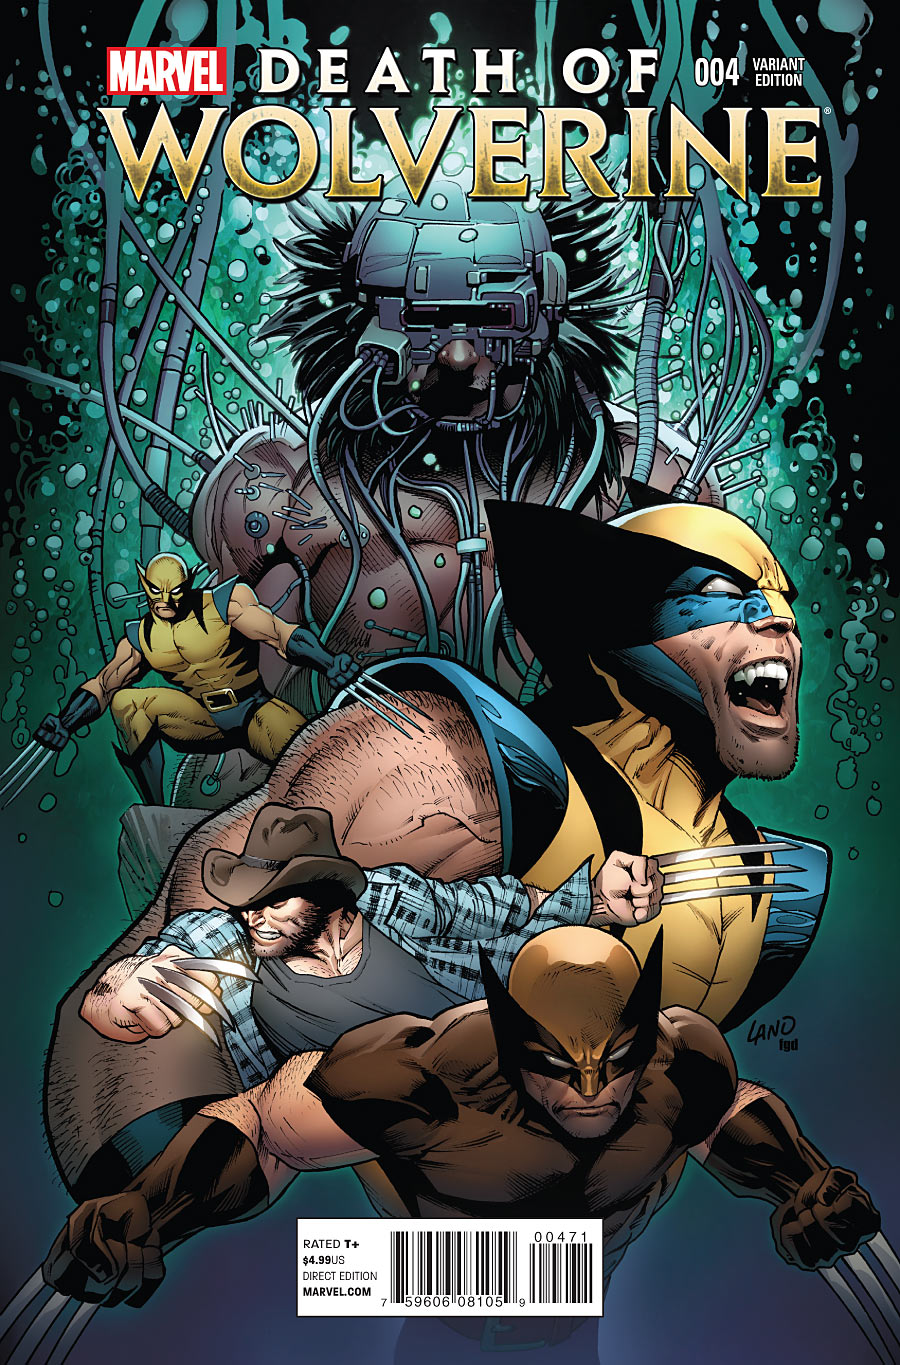 Death of Wolverine #4 variant